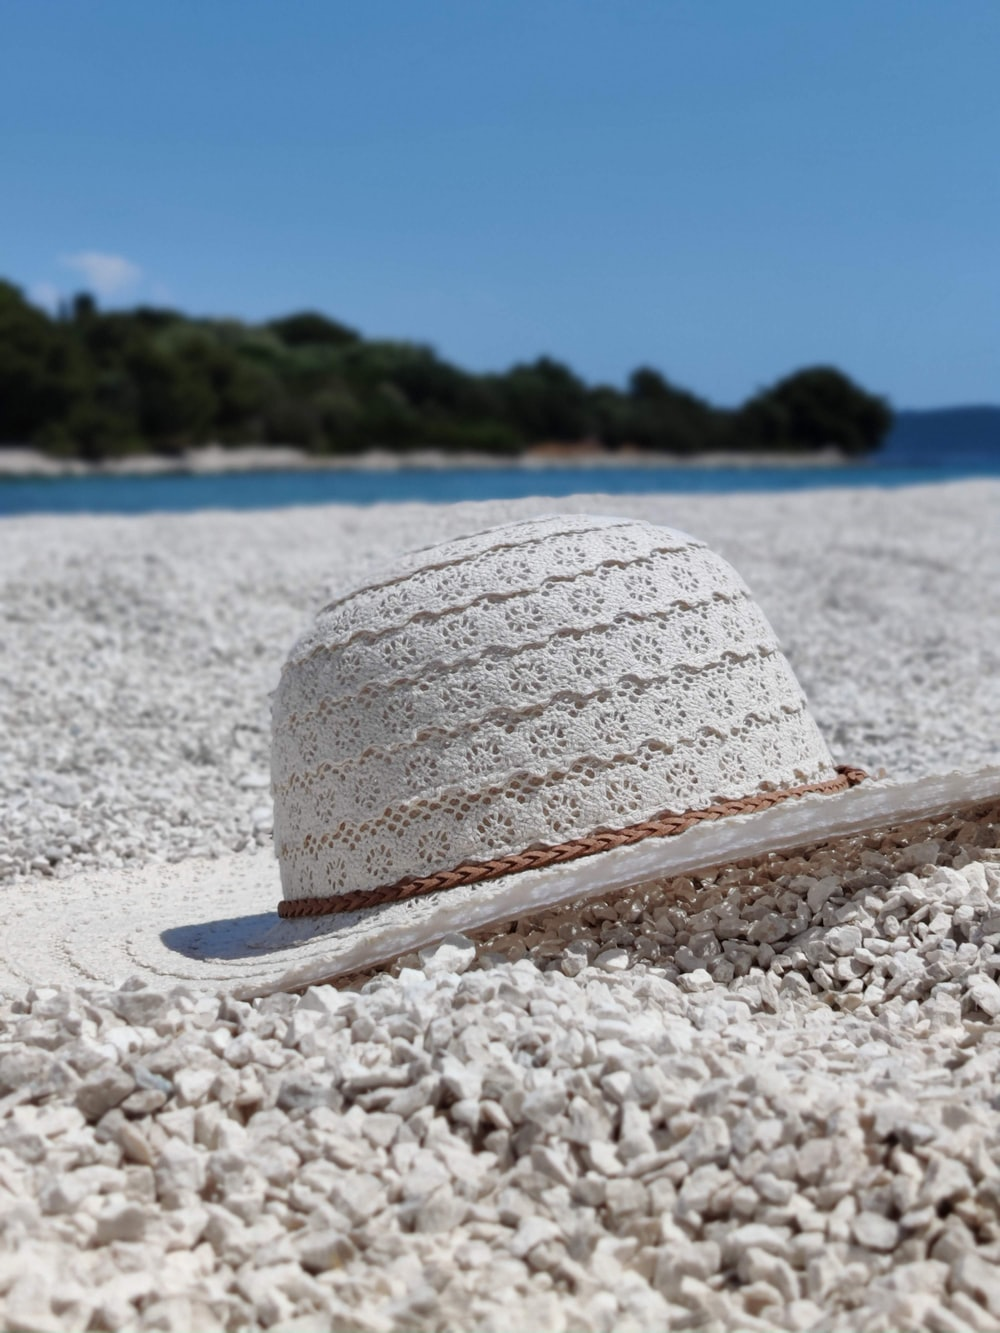 white and blue sun hat on white sand beach during daytime